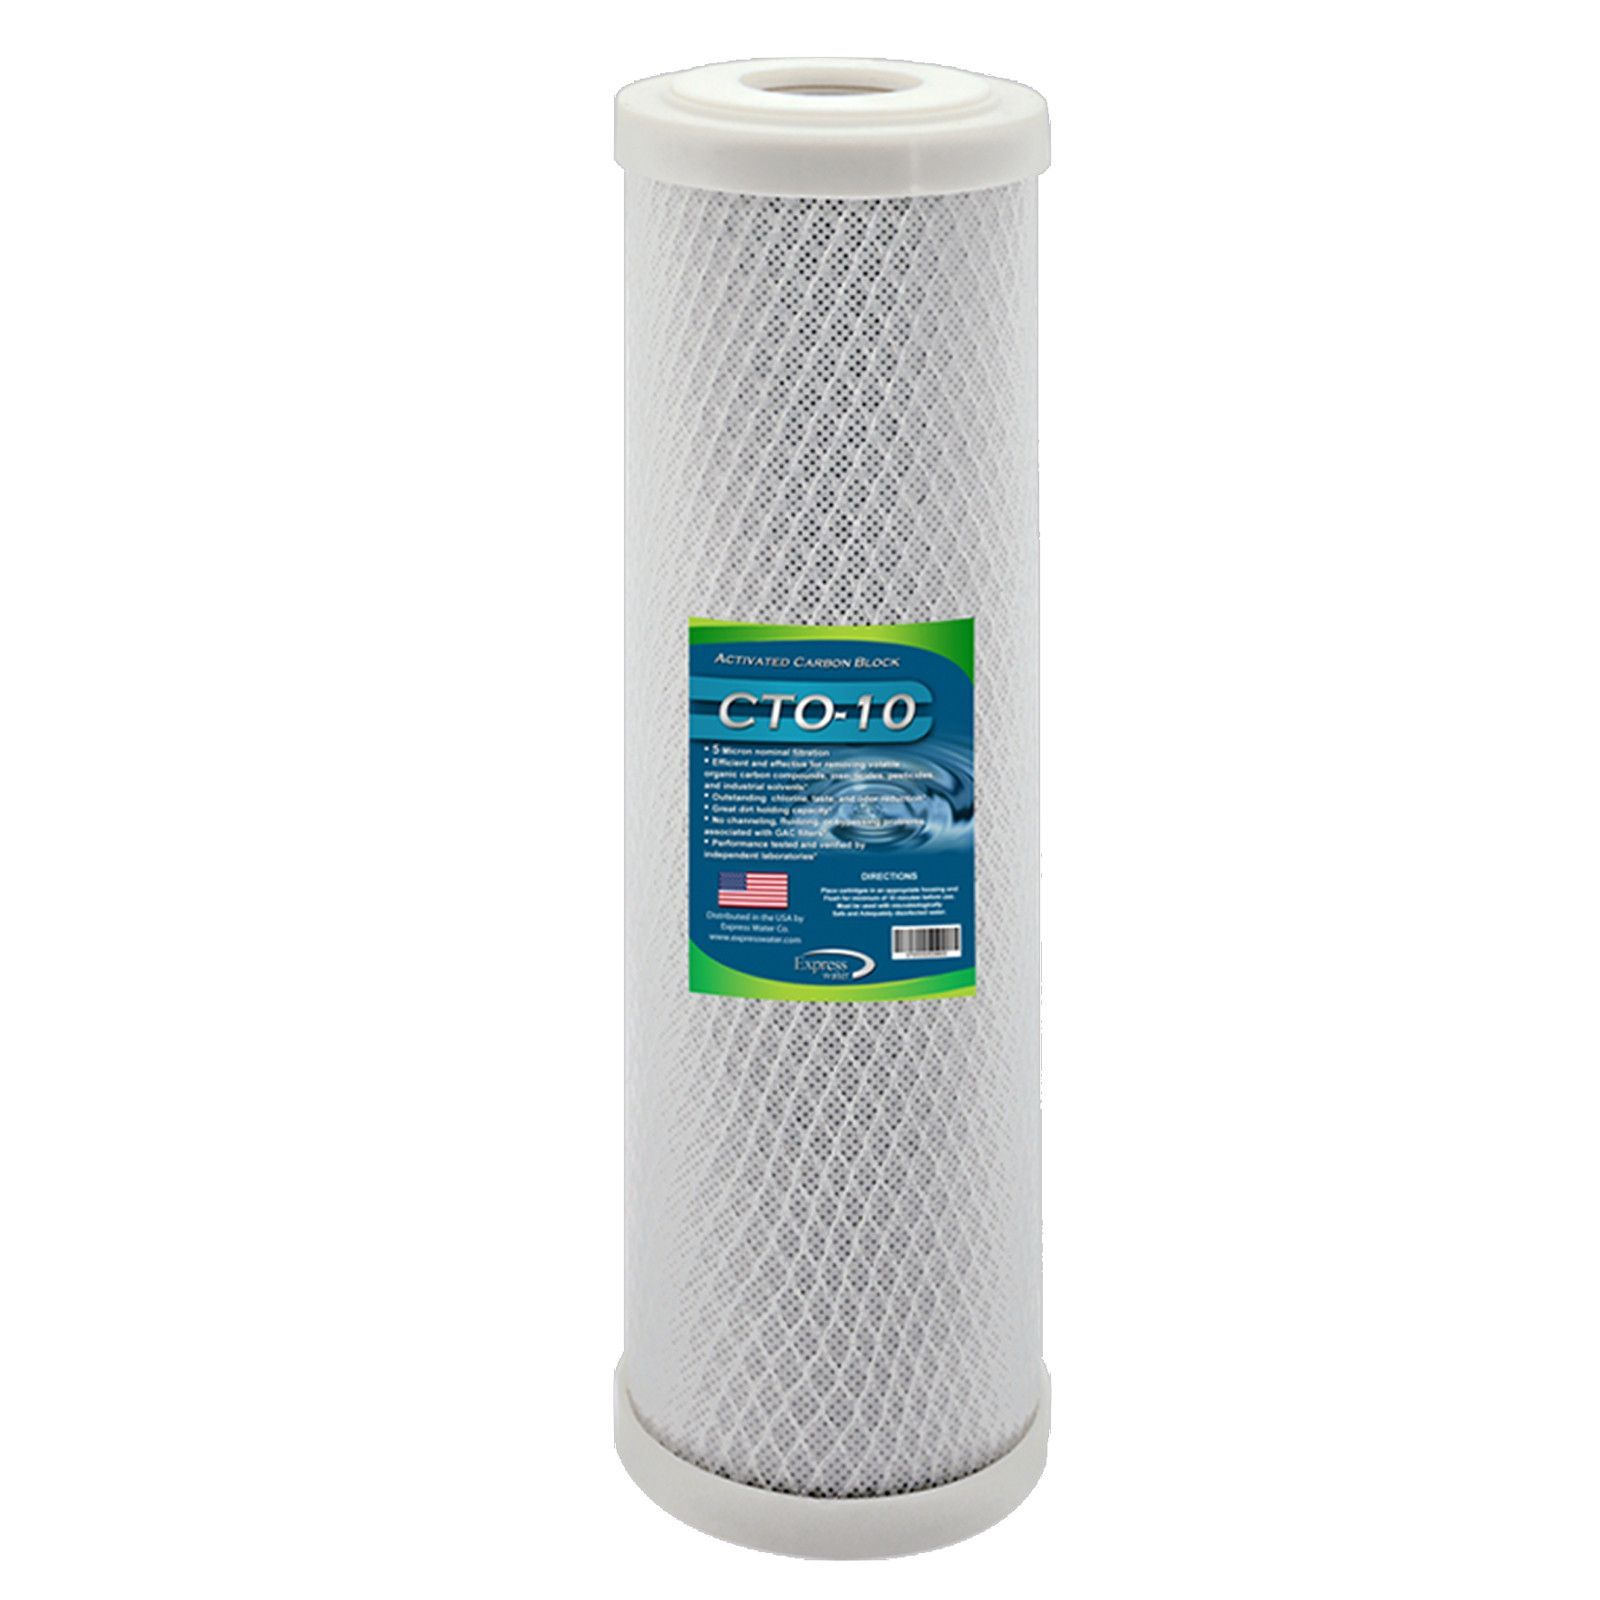 CARBON CTO Big Blue Whole House Water Filter with Block Activated Carbon, 20-Inch COCONUT